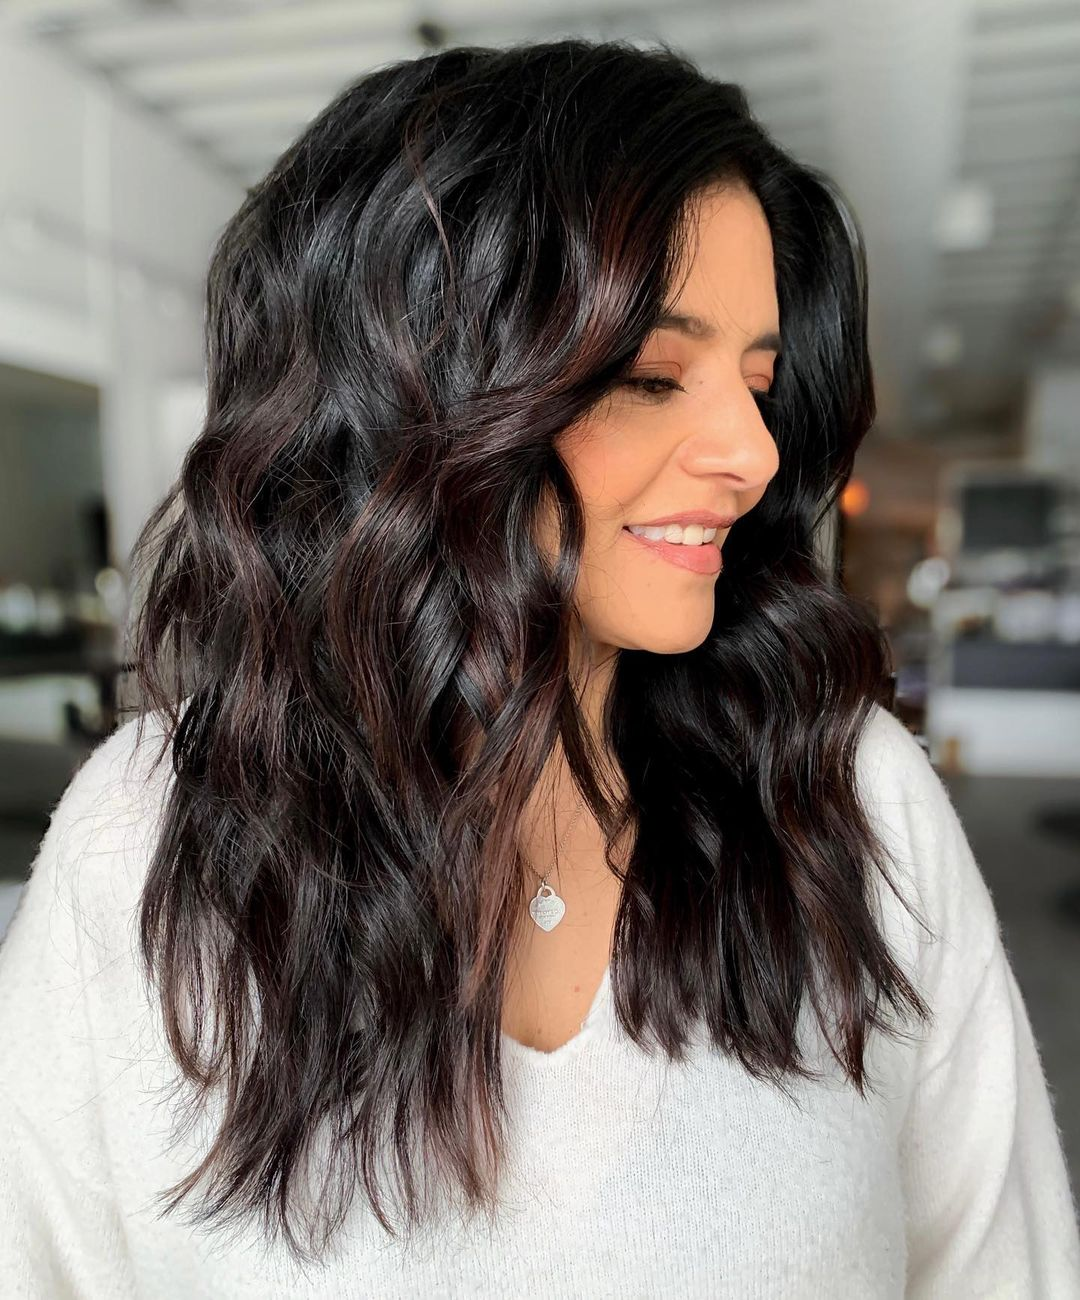 Long Textured Hairstyle for Thick Hair